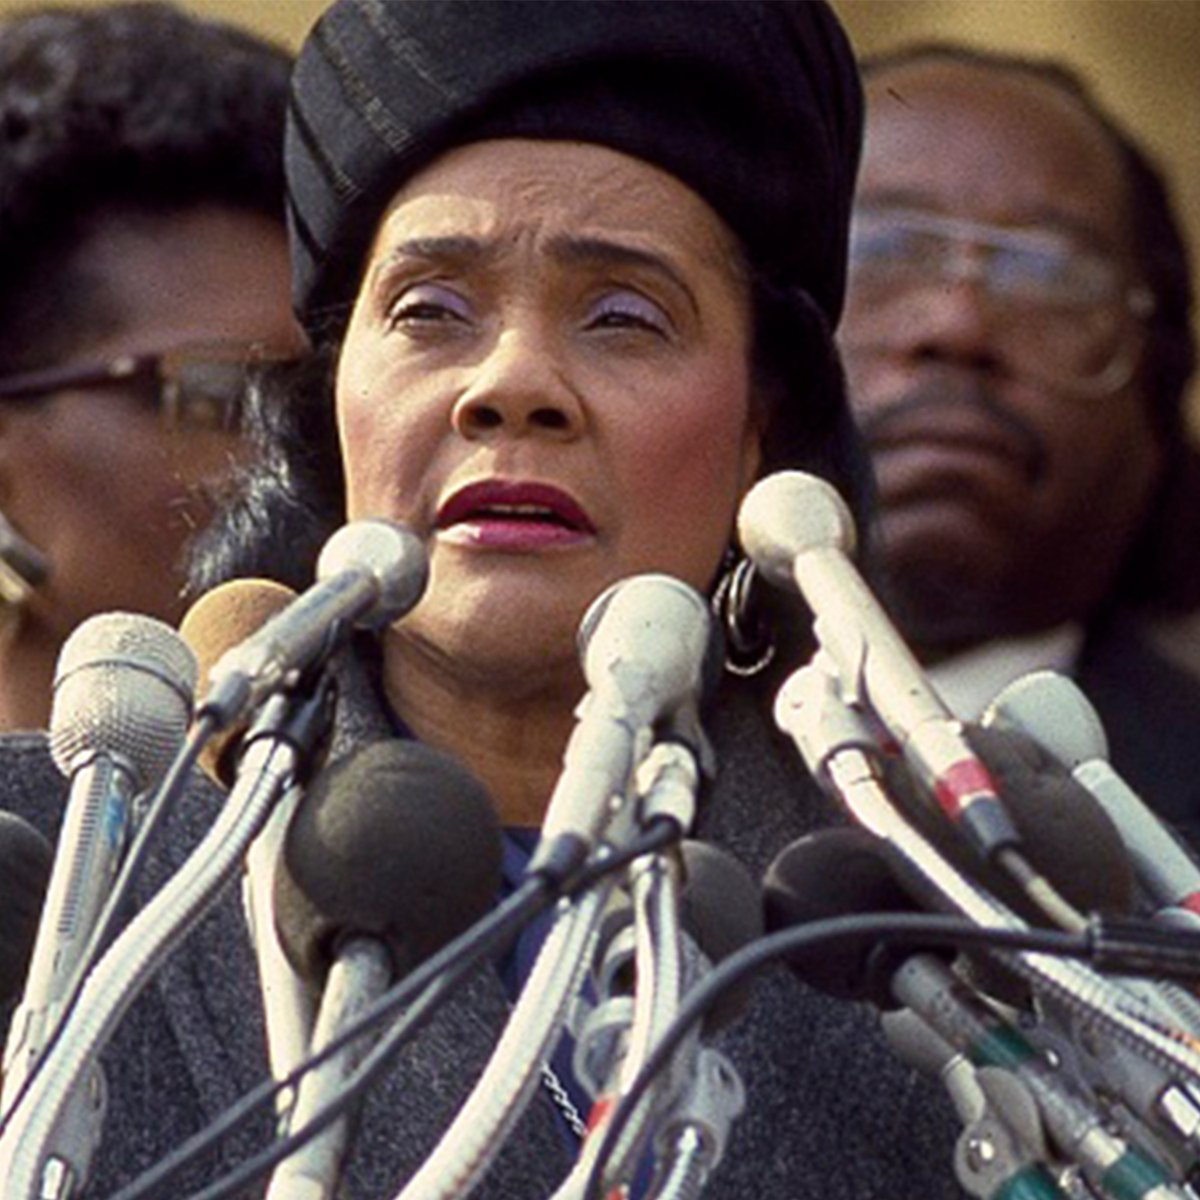 Long may the vision of Martin and Coretta Scott King continue! We need it more than ever, with the racial division and anger that never seems to go away.   Click  to read 'Coretta Scott King's Dream.'. #CorettaScottKing #IHaveADream #MLK #CivilRights